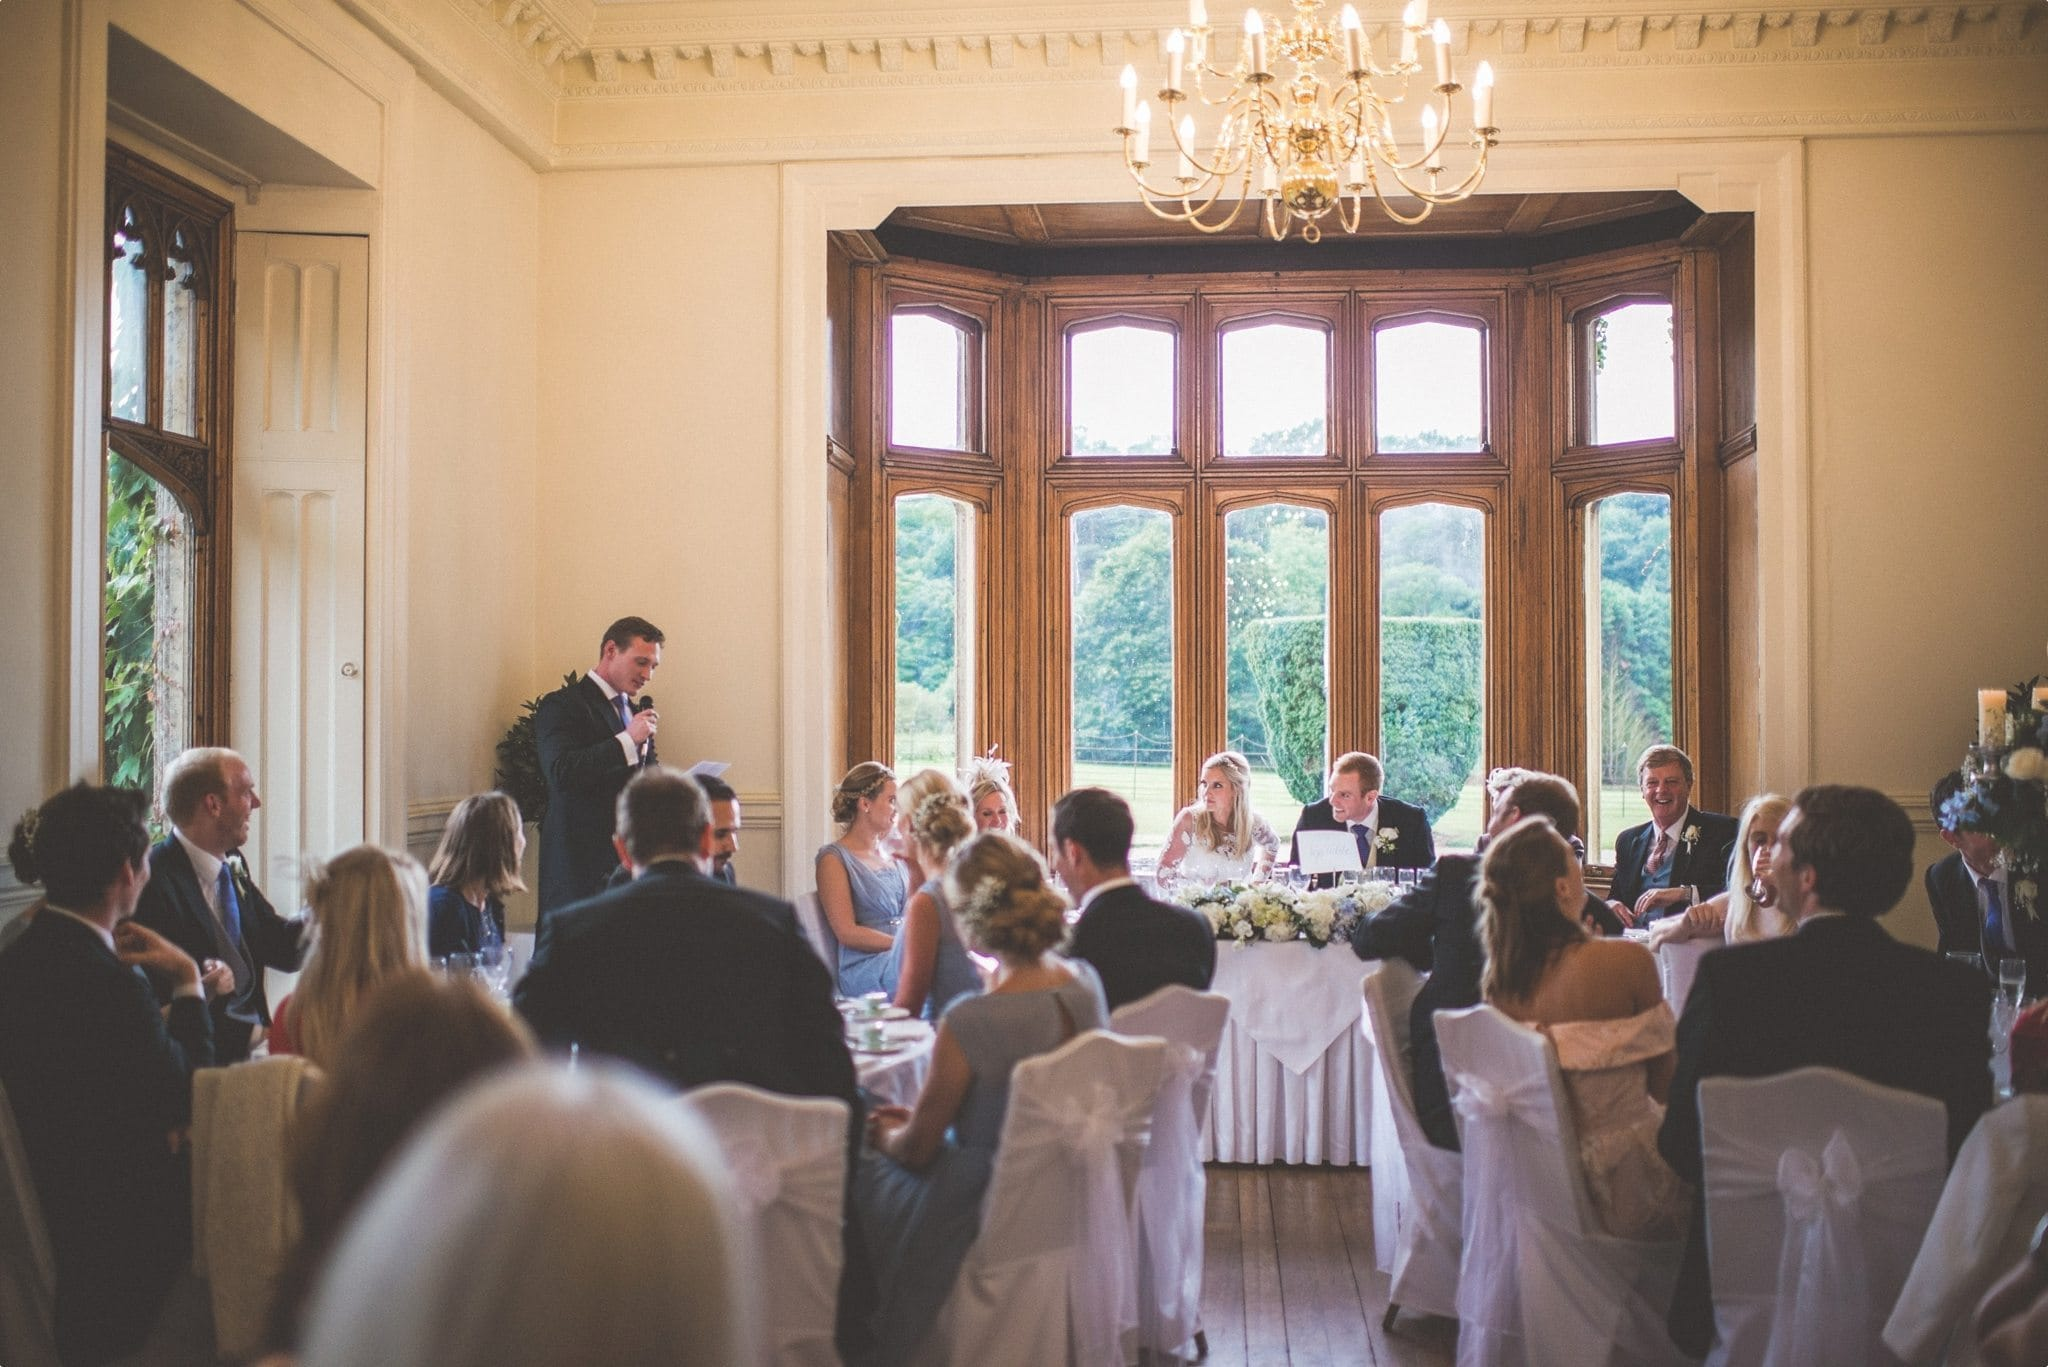 st-audries-park-wedding-maria-assia-photography-571